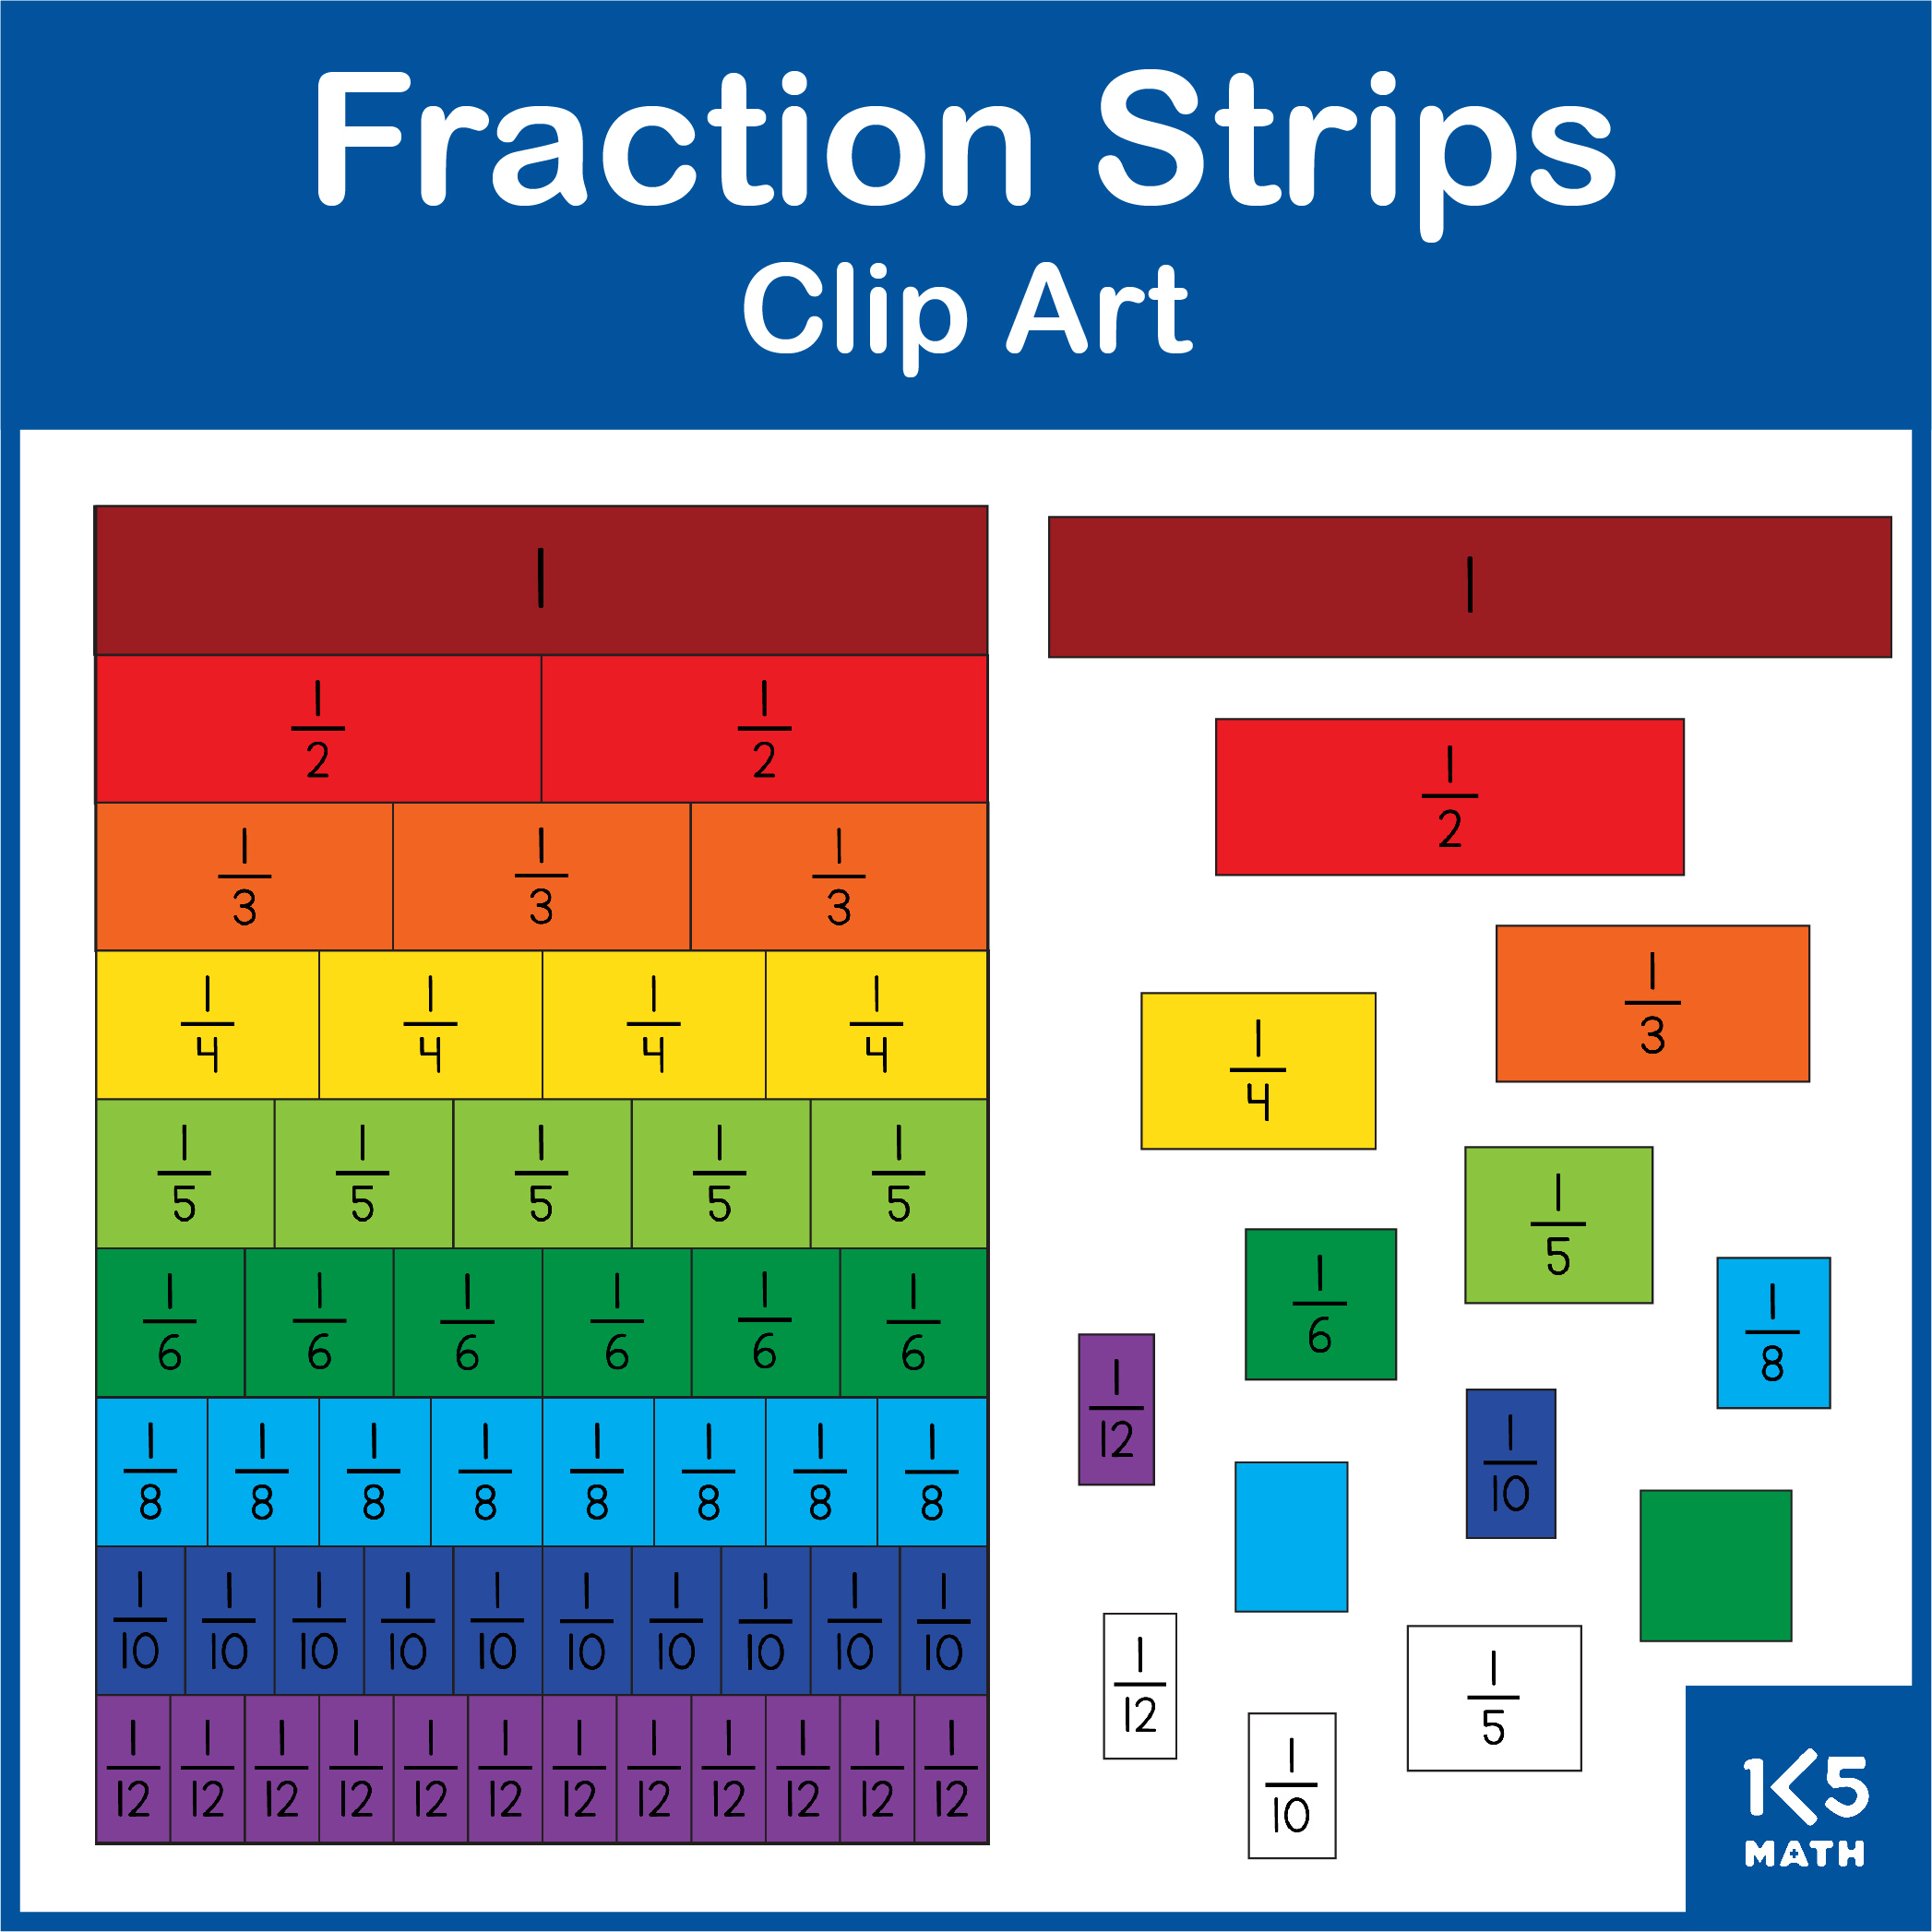 Fraction Strips Clip Art